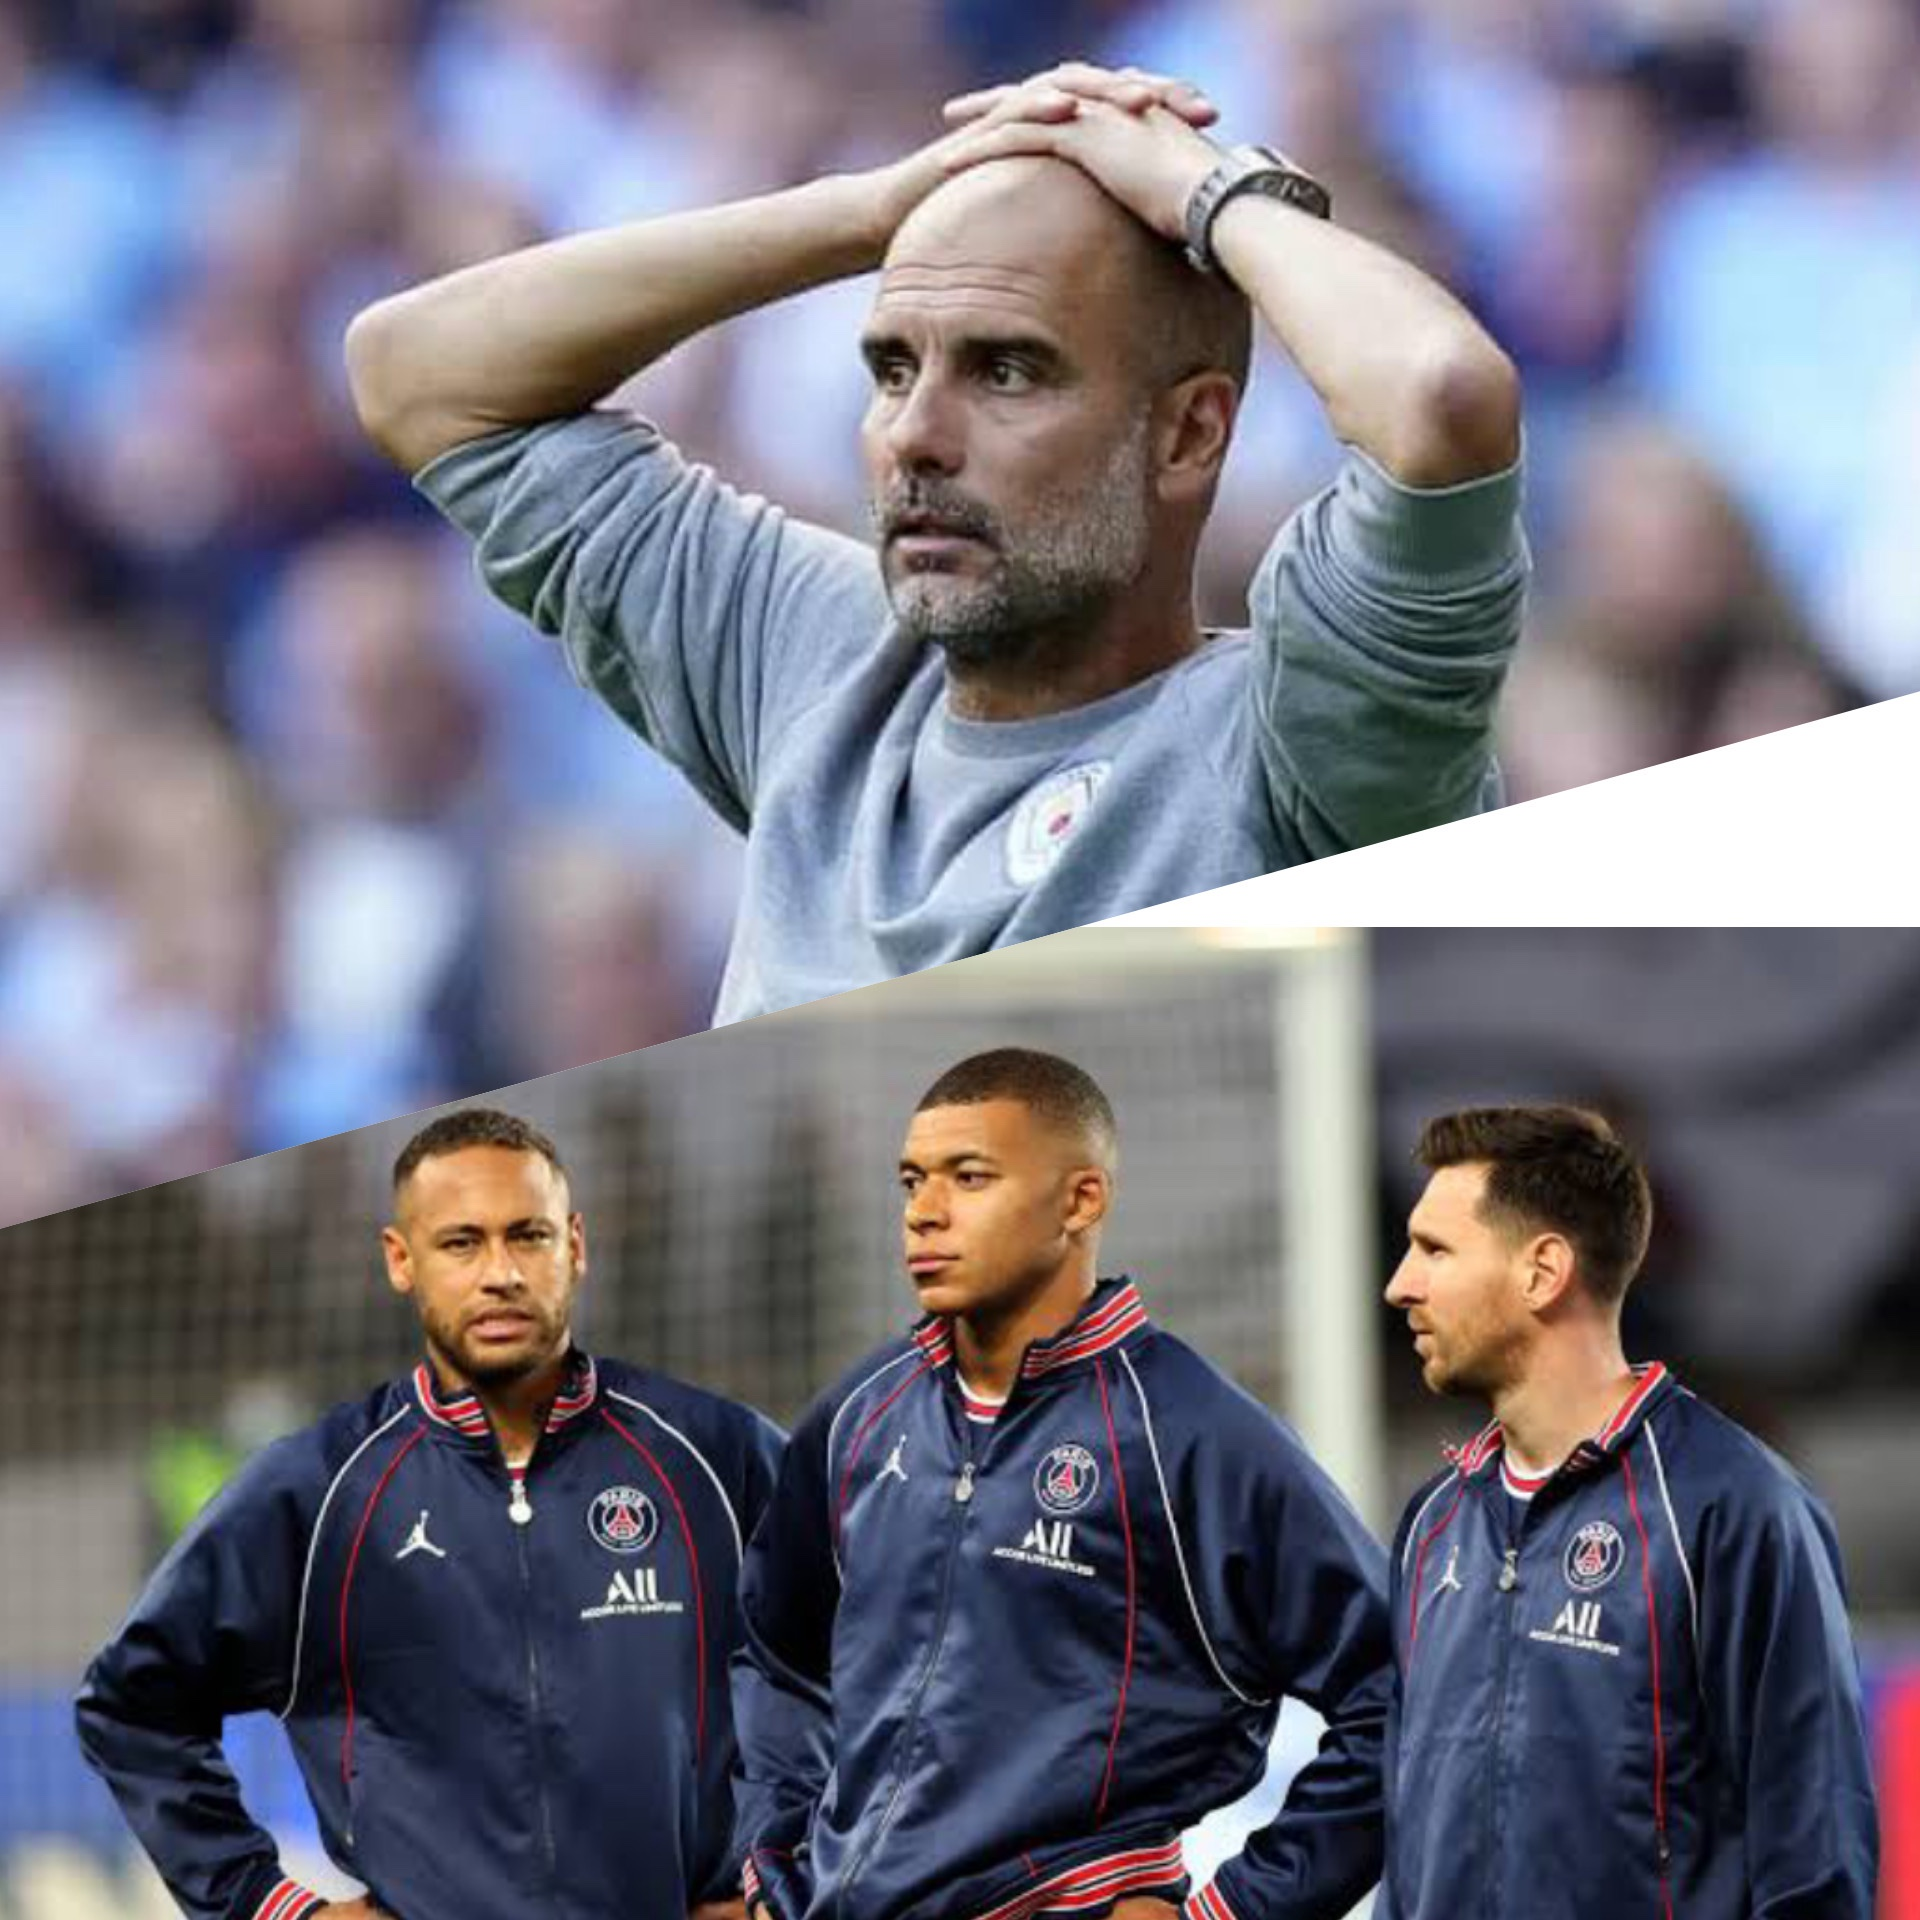 PSG vs Man City: I don't know how to stop Messi, Neymar, Mbappe – Pep Guardiola